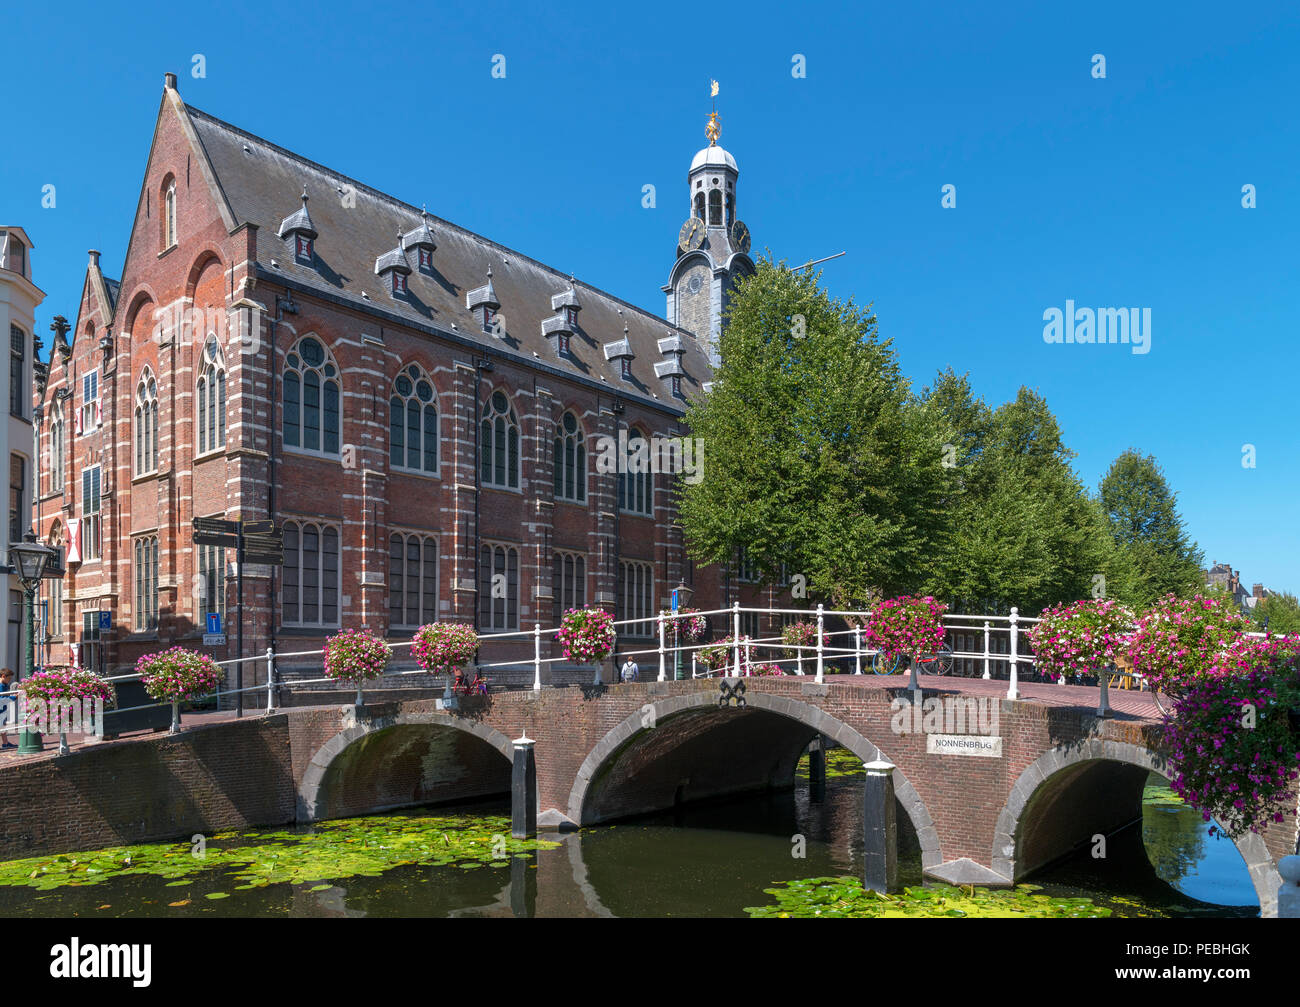 The Academy Building of Leiden University by Nonnenbrug on the Rapenburg Canal, Leiden, Zuid-Holland (South Holland), Netherlands - Stock Image